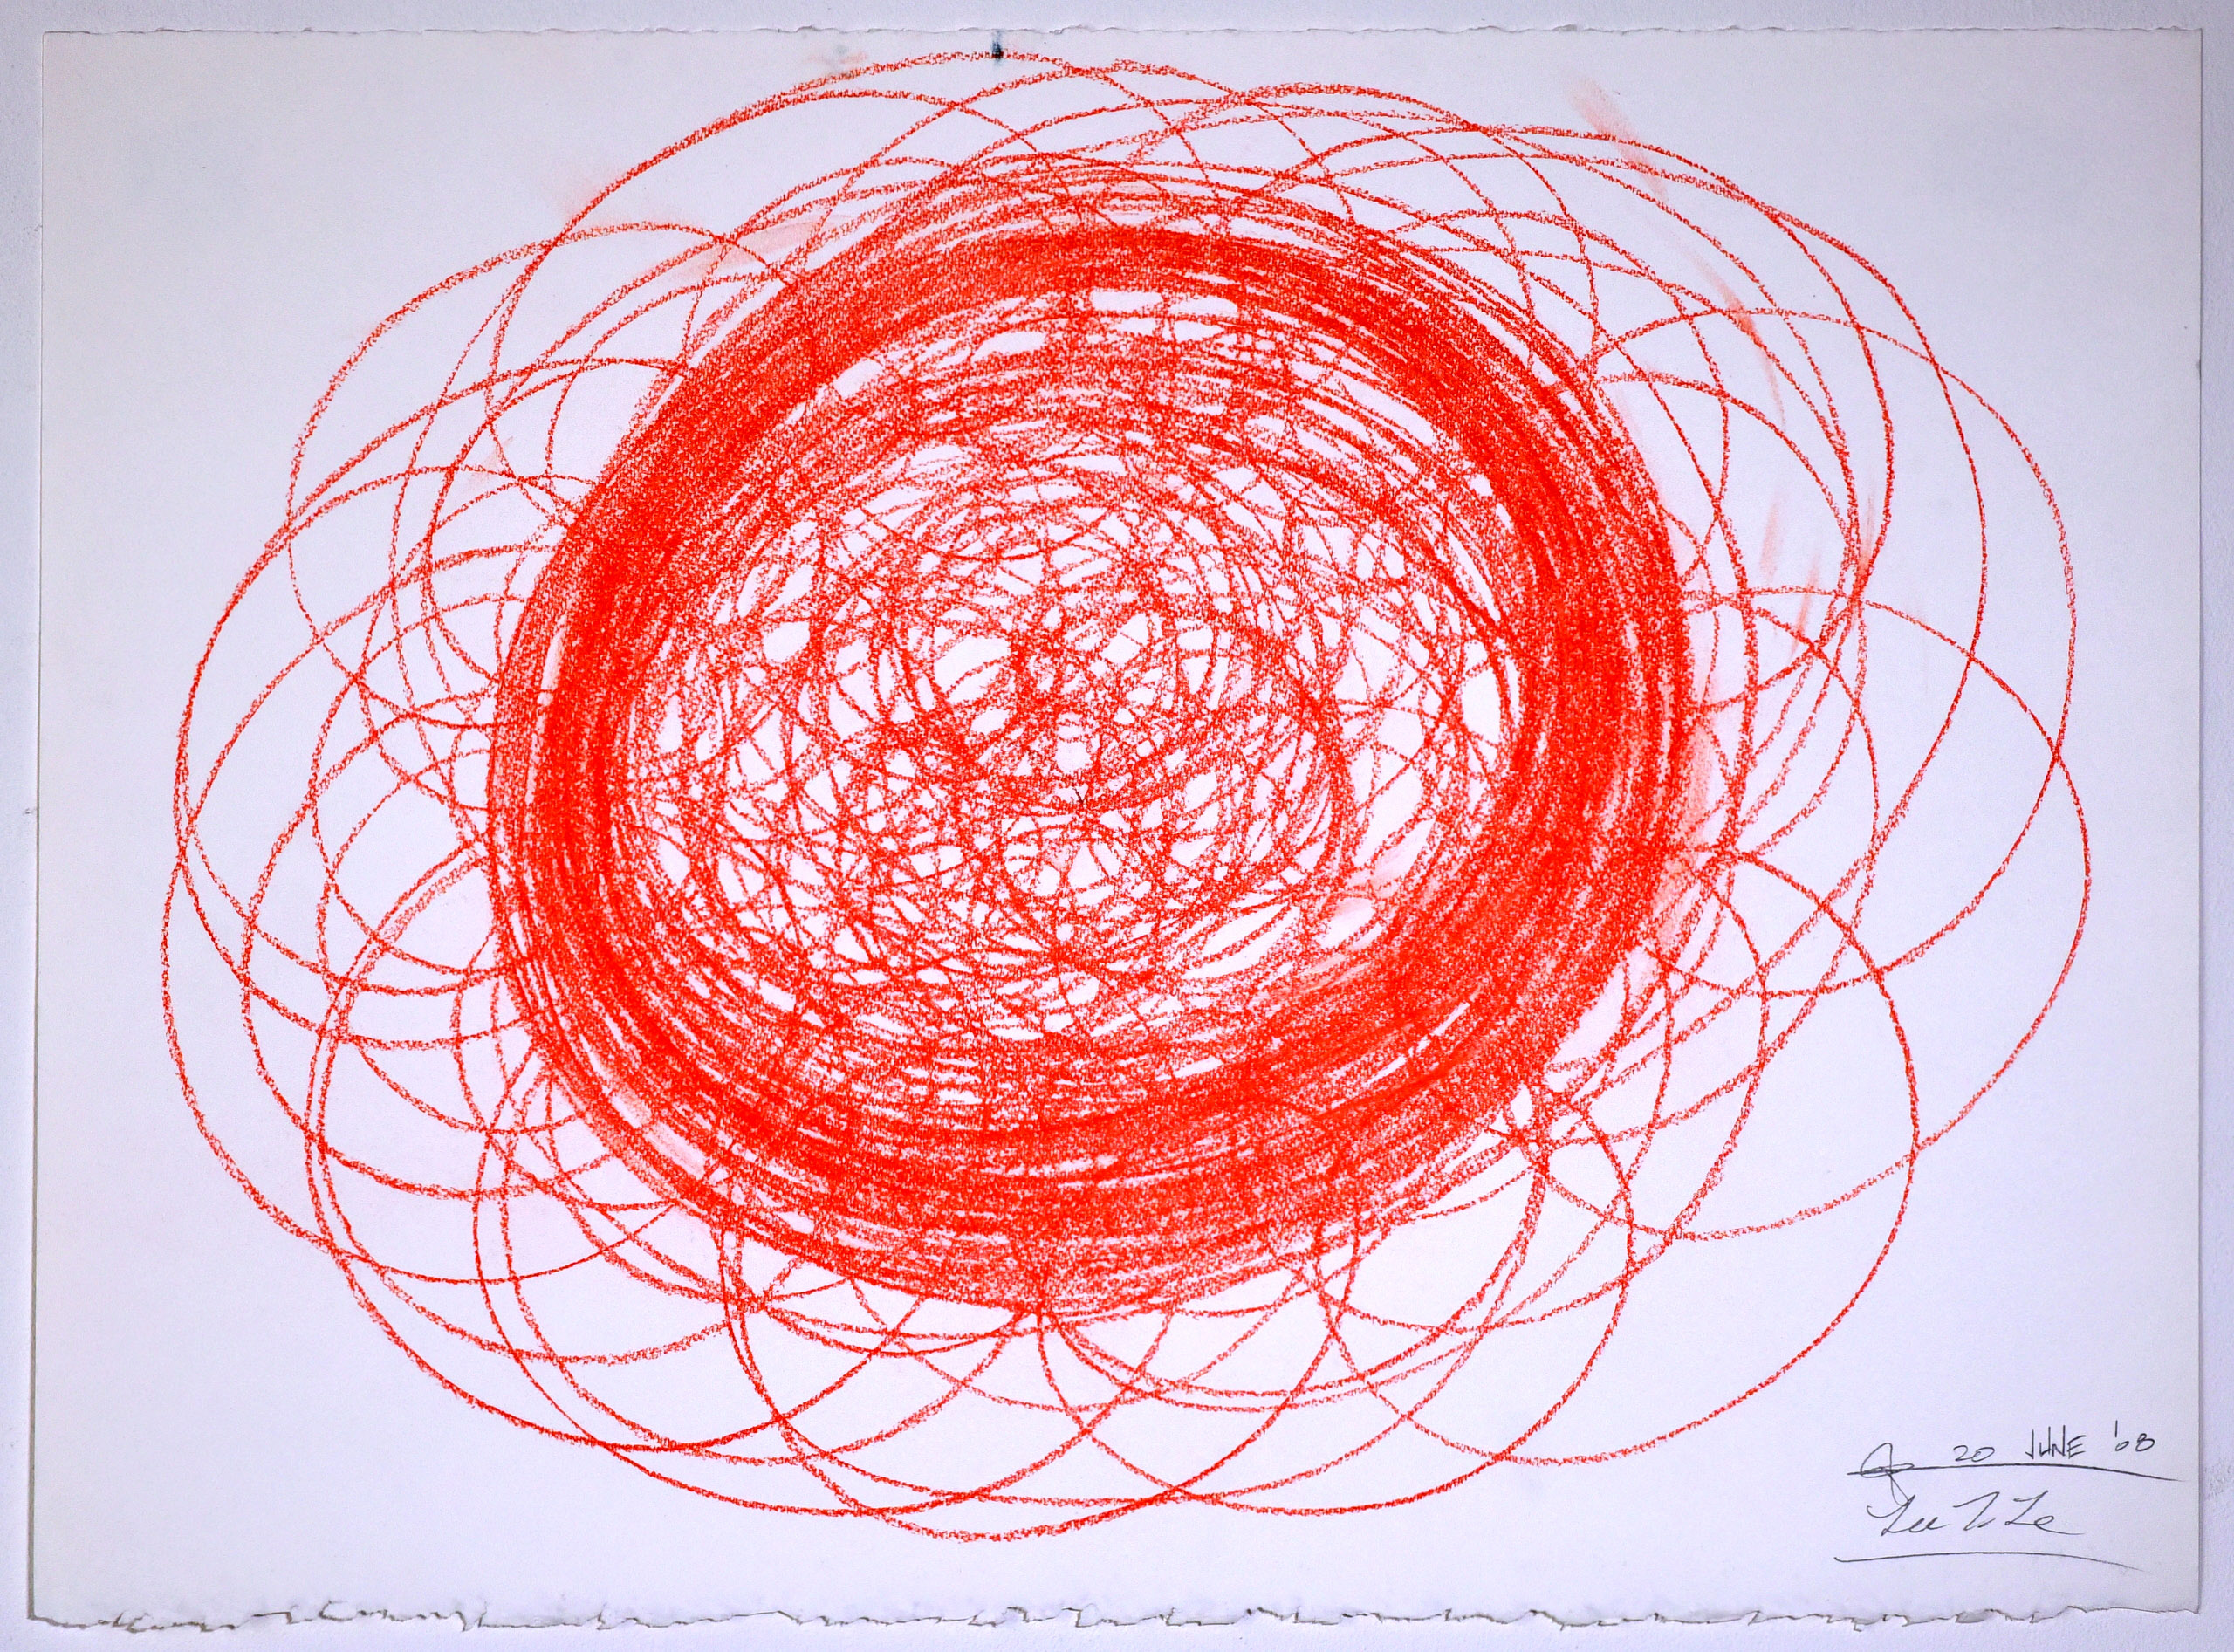 """Automatic Drawing #12, 20 June 2008, conte crayon on paper, 22x30"""", Lee Tuyet Le & Glenn Zucman"""